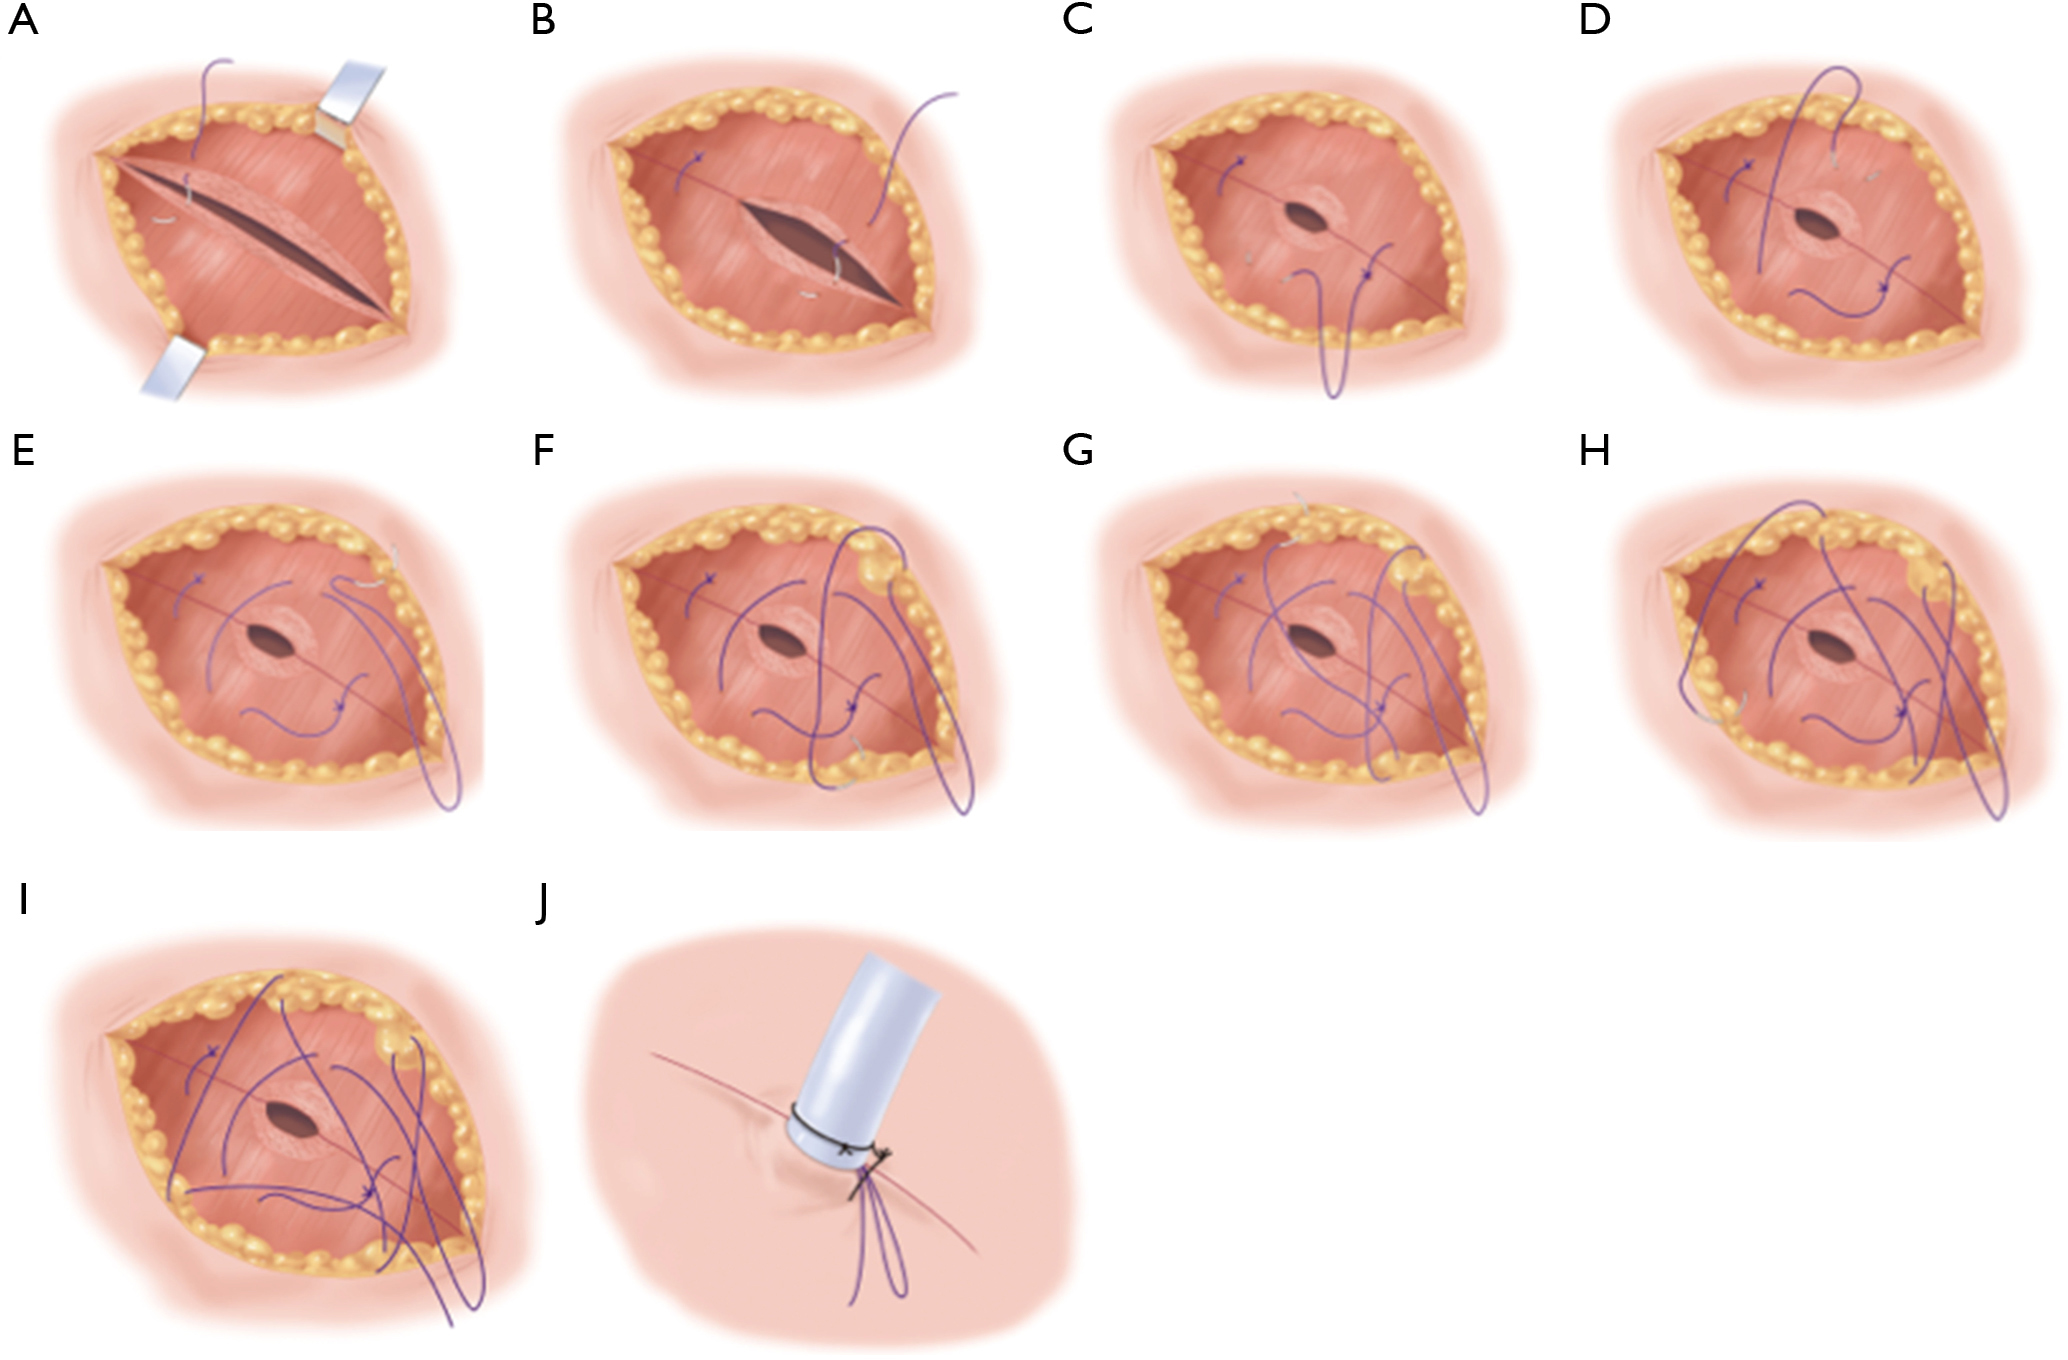 A novel technique for chest drain removal using a two layer